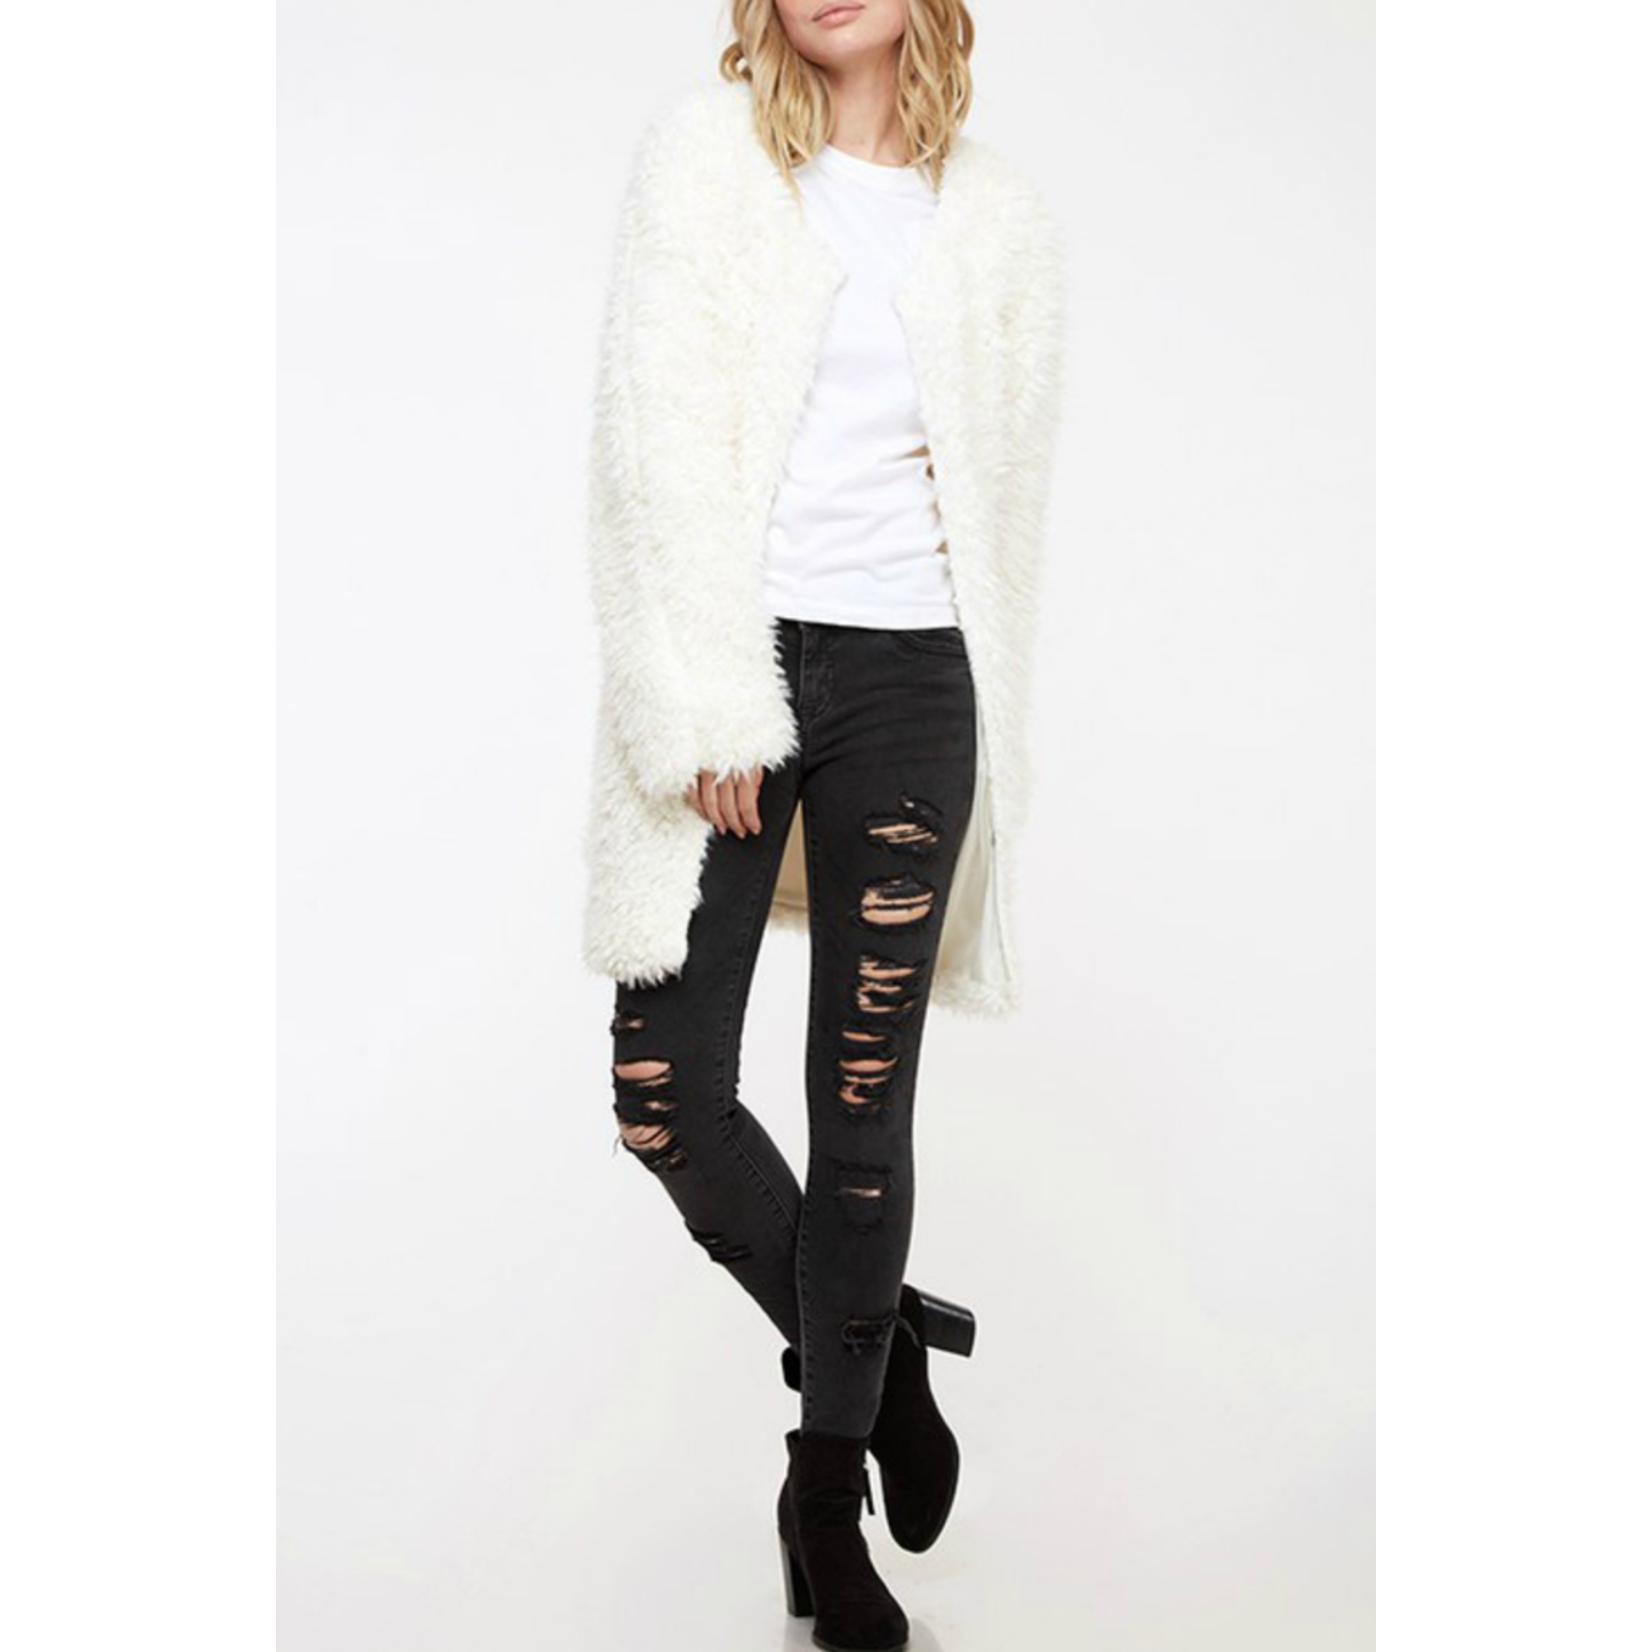 Fantastic Fawn Fuzzy knit coat, sale item, Was $65